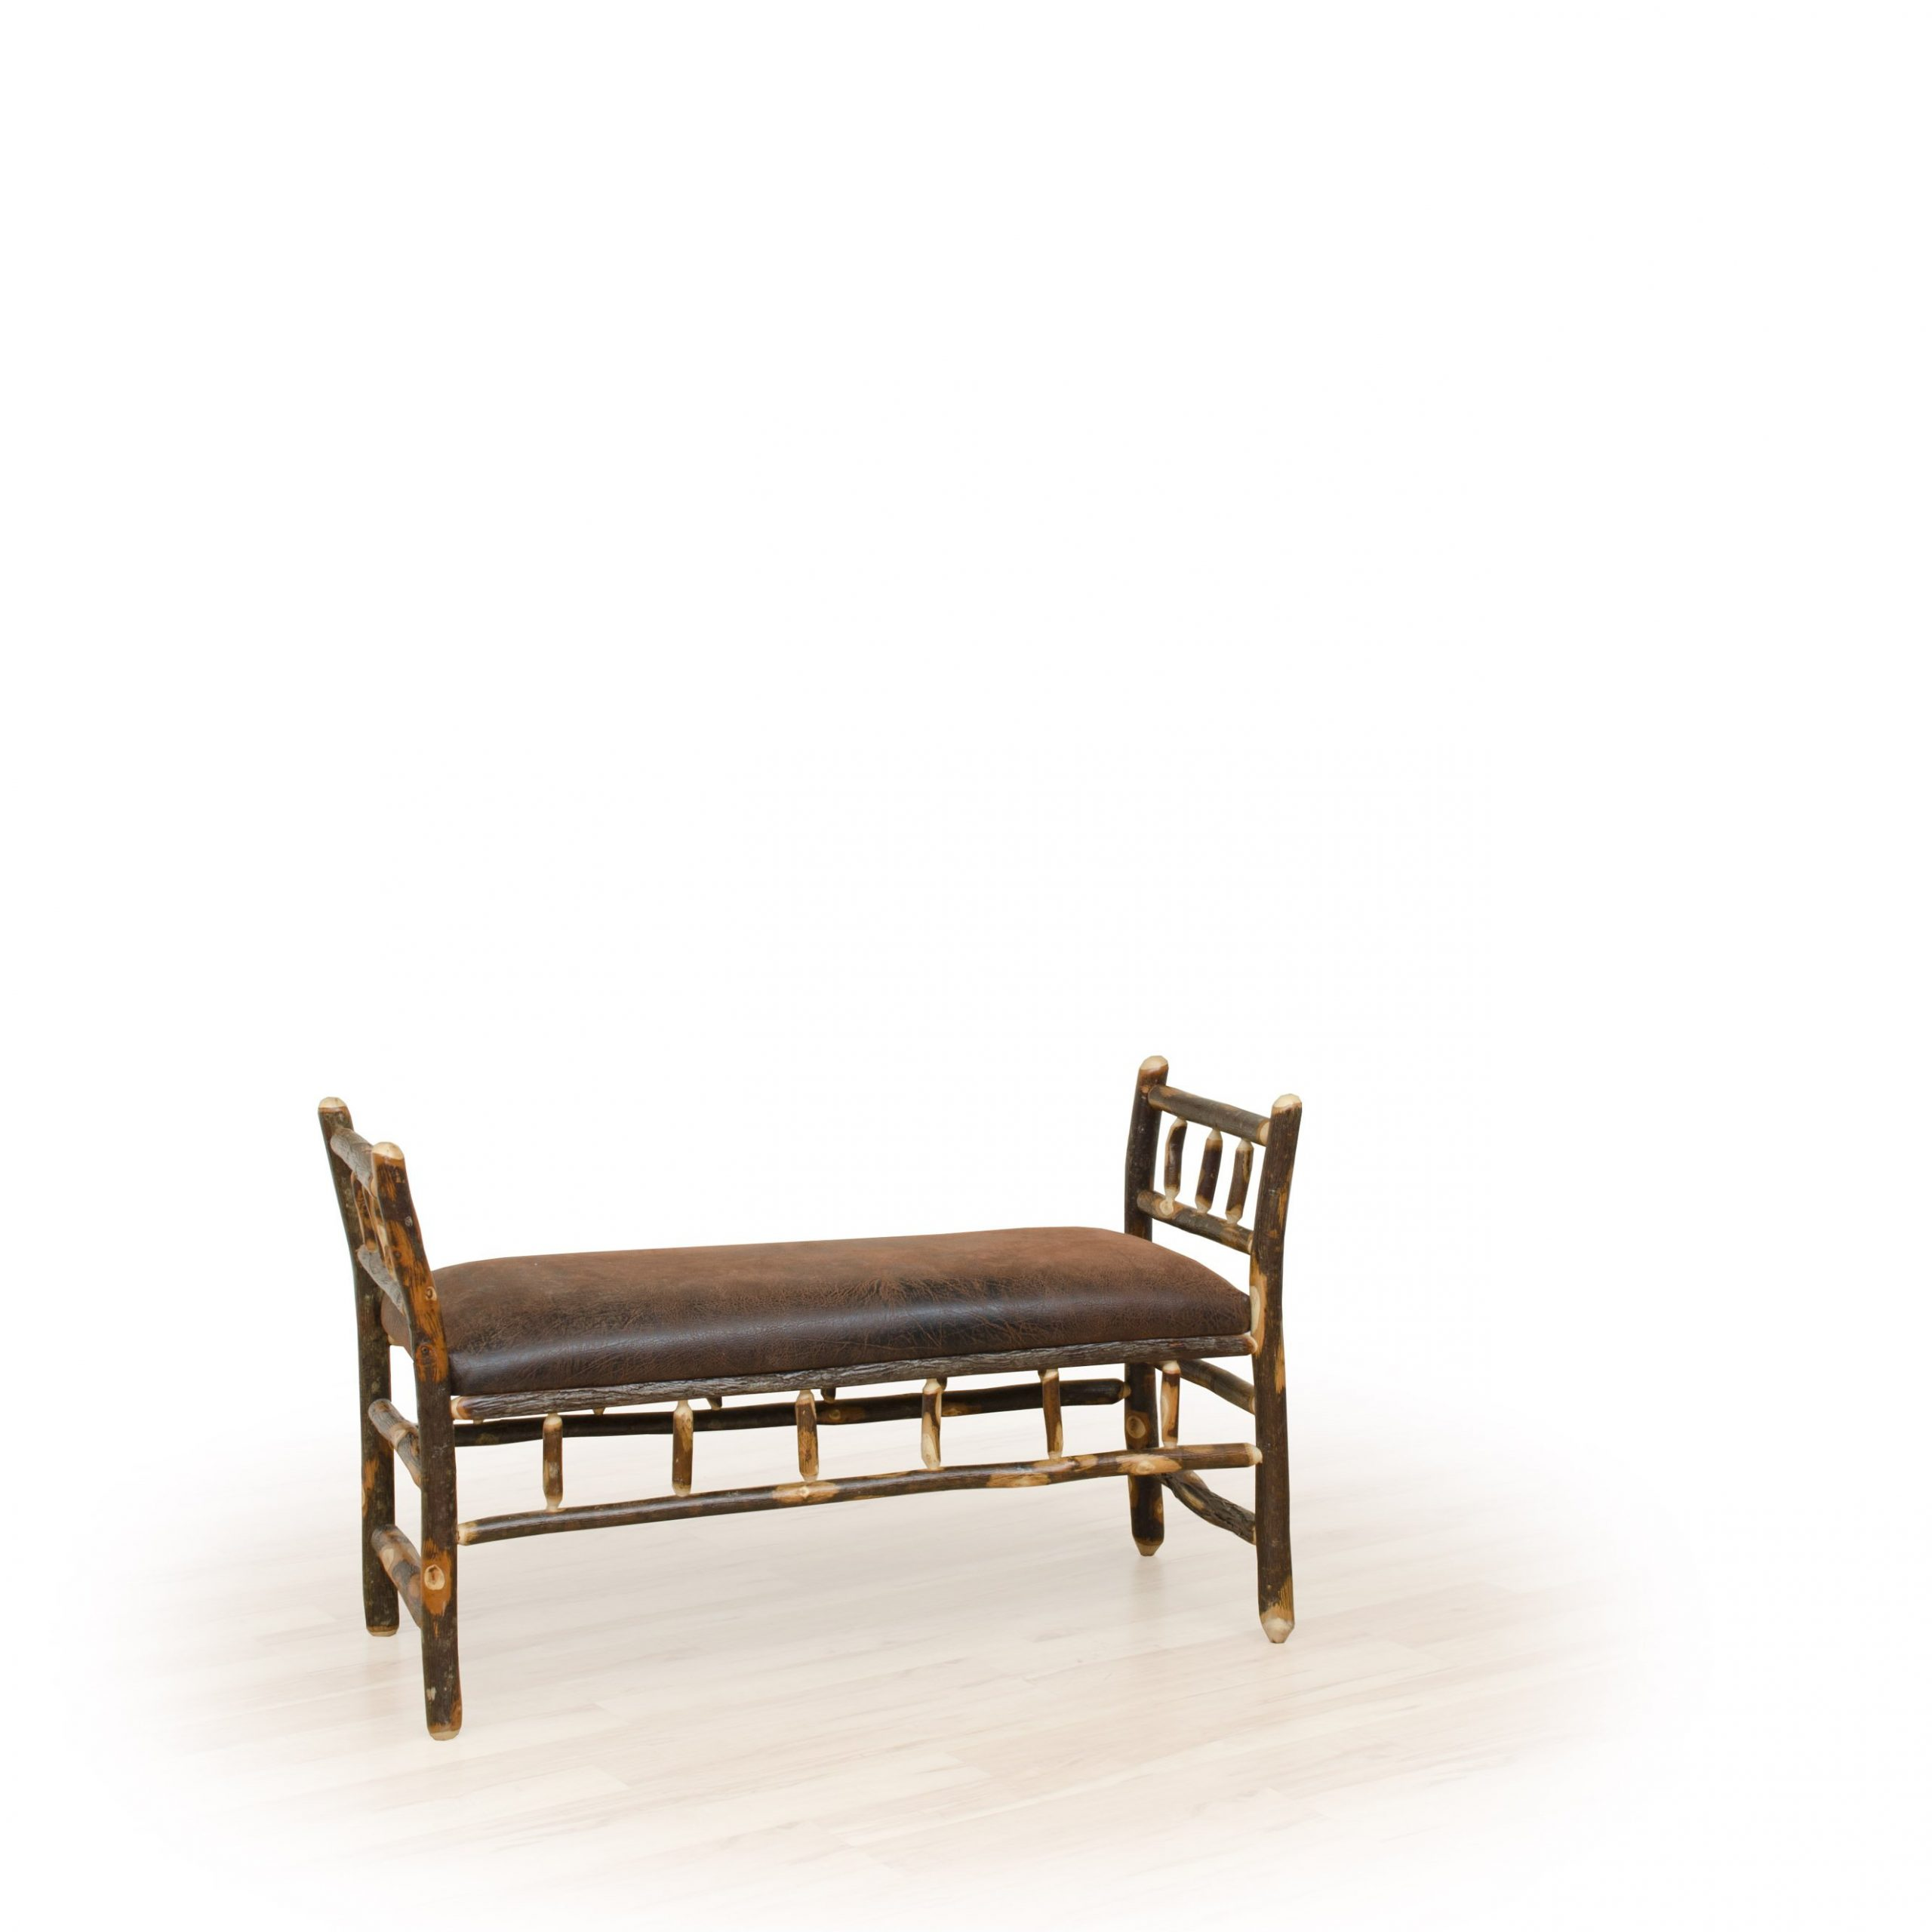 All About Byler's Rustic Furniture – Adirondack Furniture Intended For Cedar Colonial Style Glider Benches (View 11 of 25)